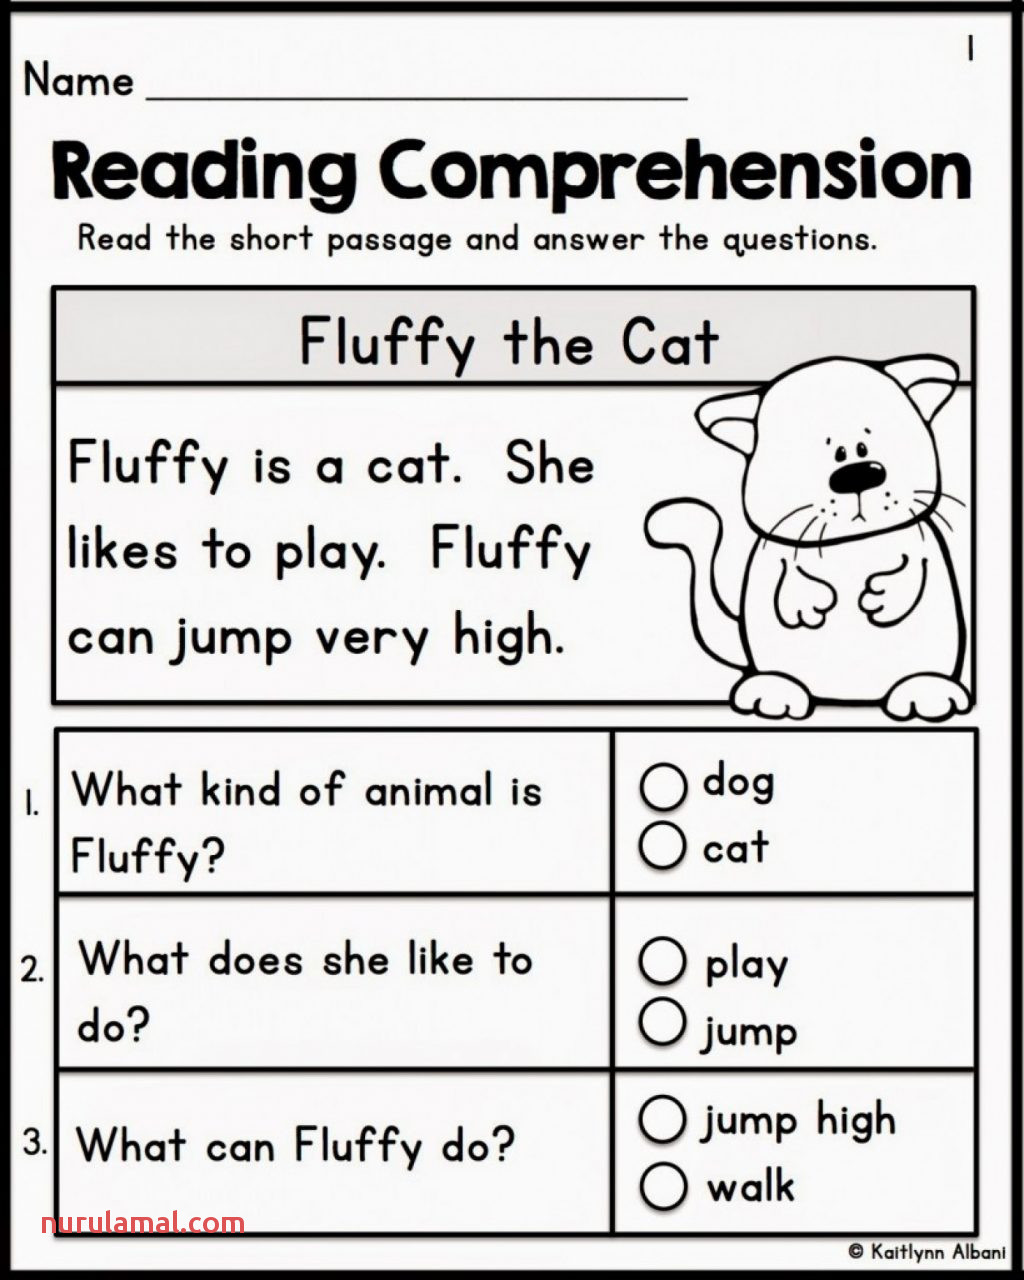 staggering free printable reading prehension image ideas coloring book kindergarten english worksheets 1024x1280